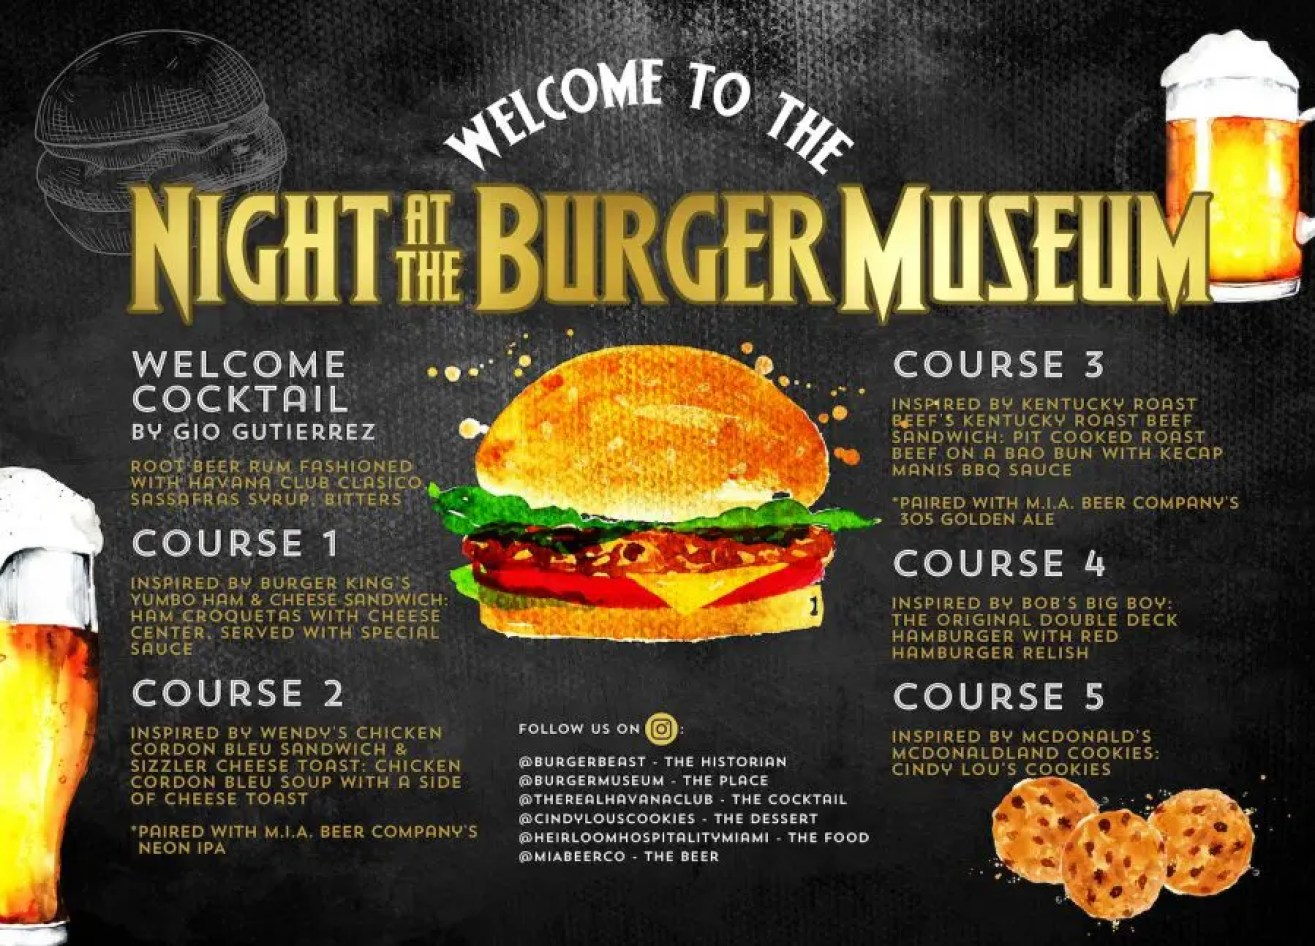 Night at the Burger Museum Menu